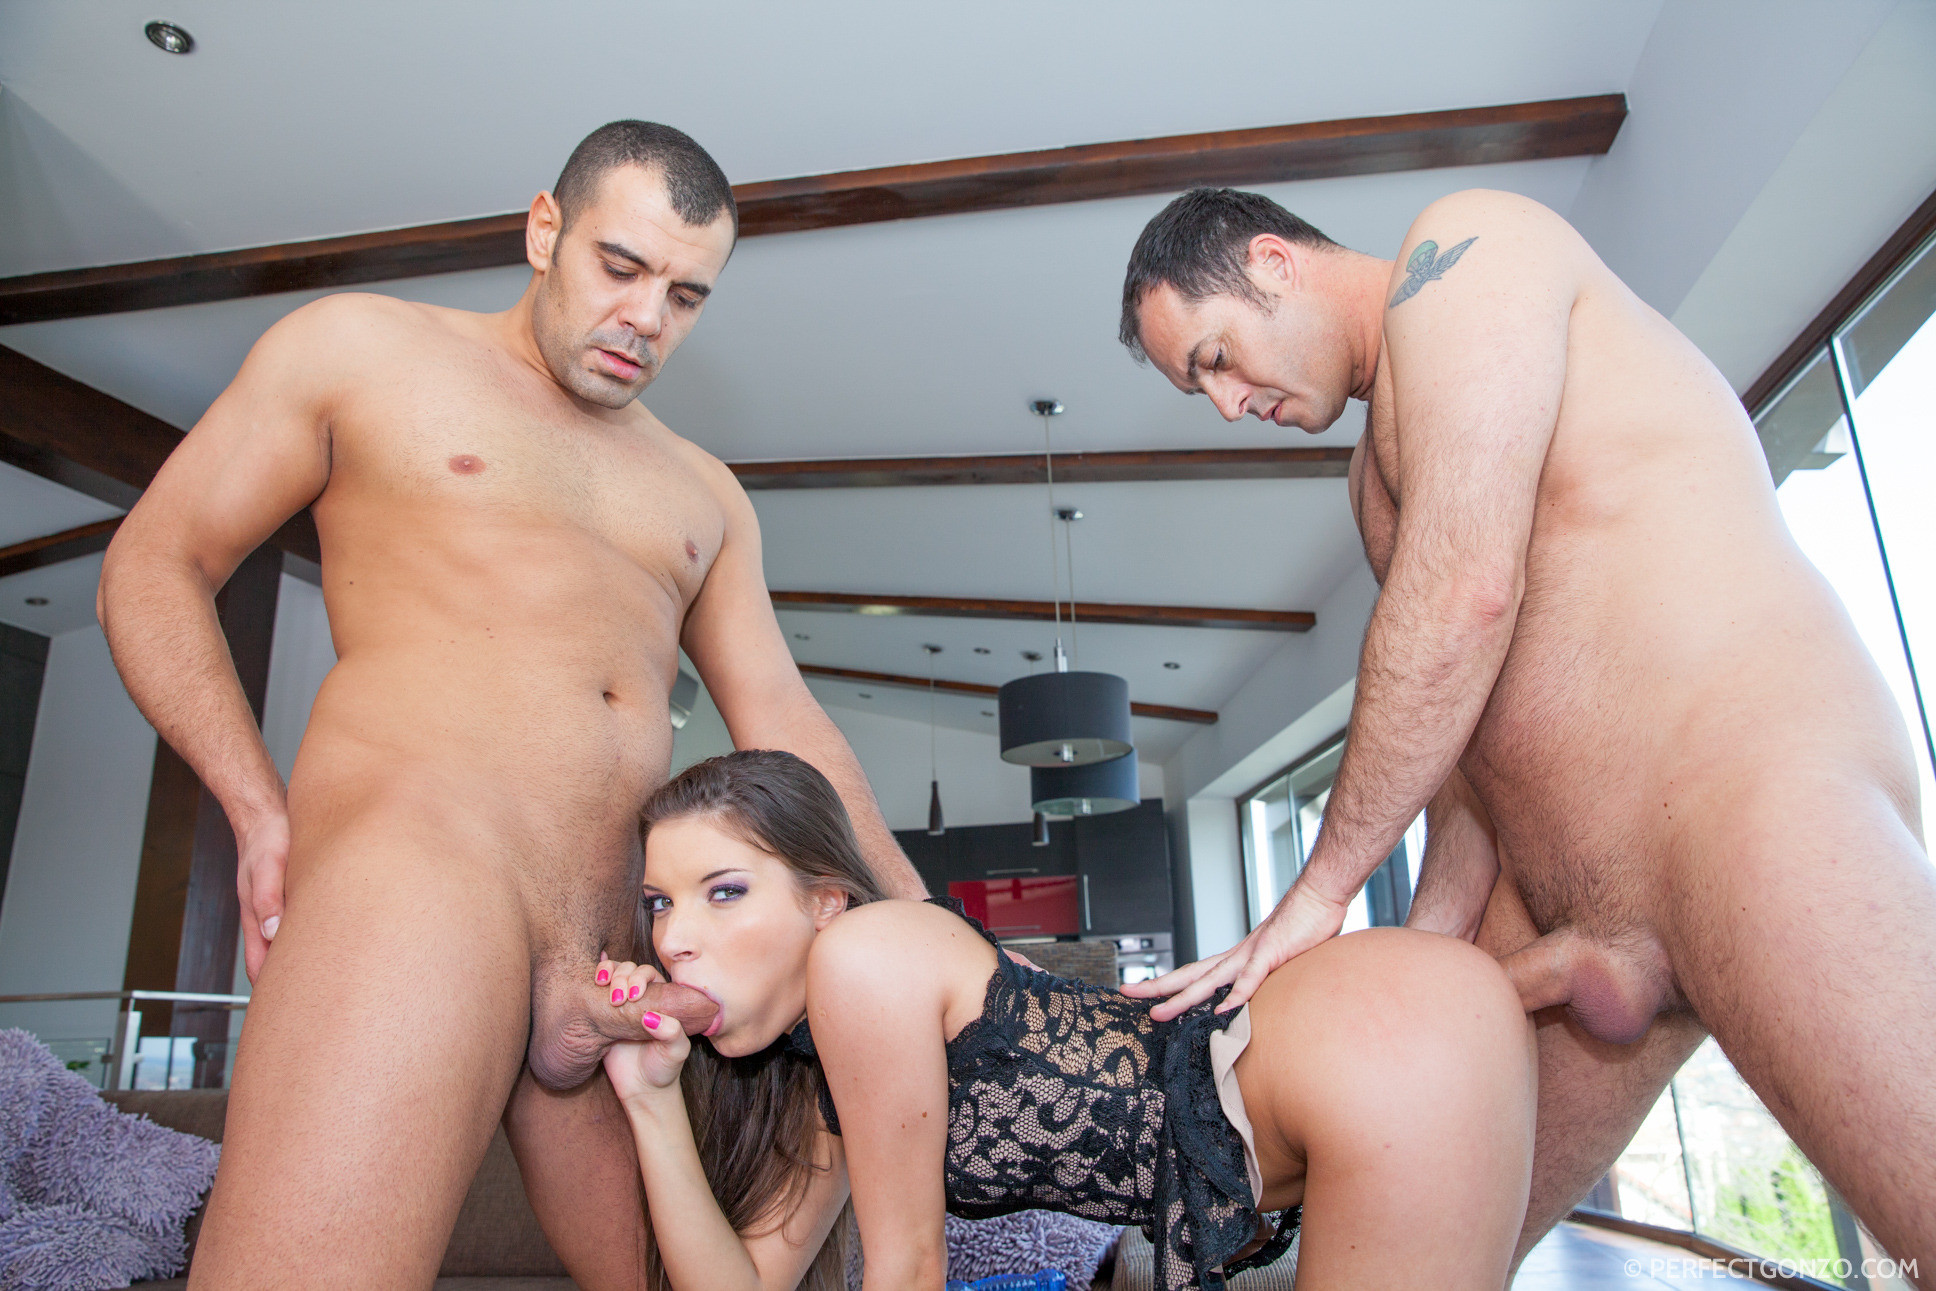 Cherry torn likes to do some anal